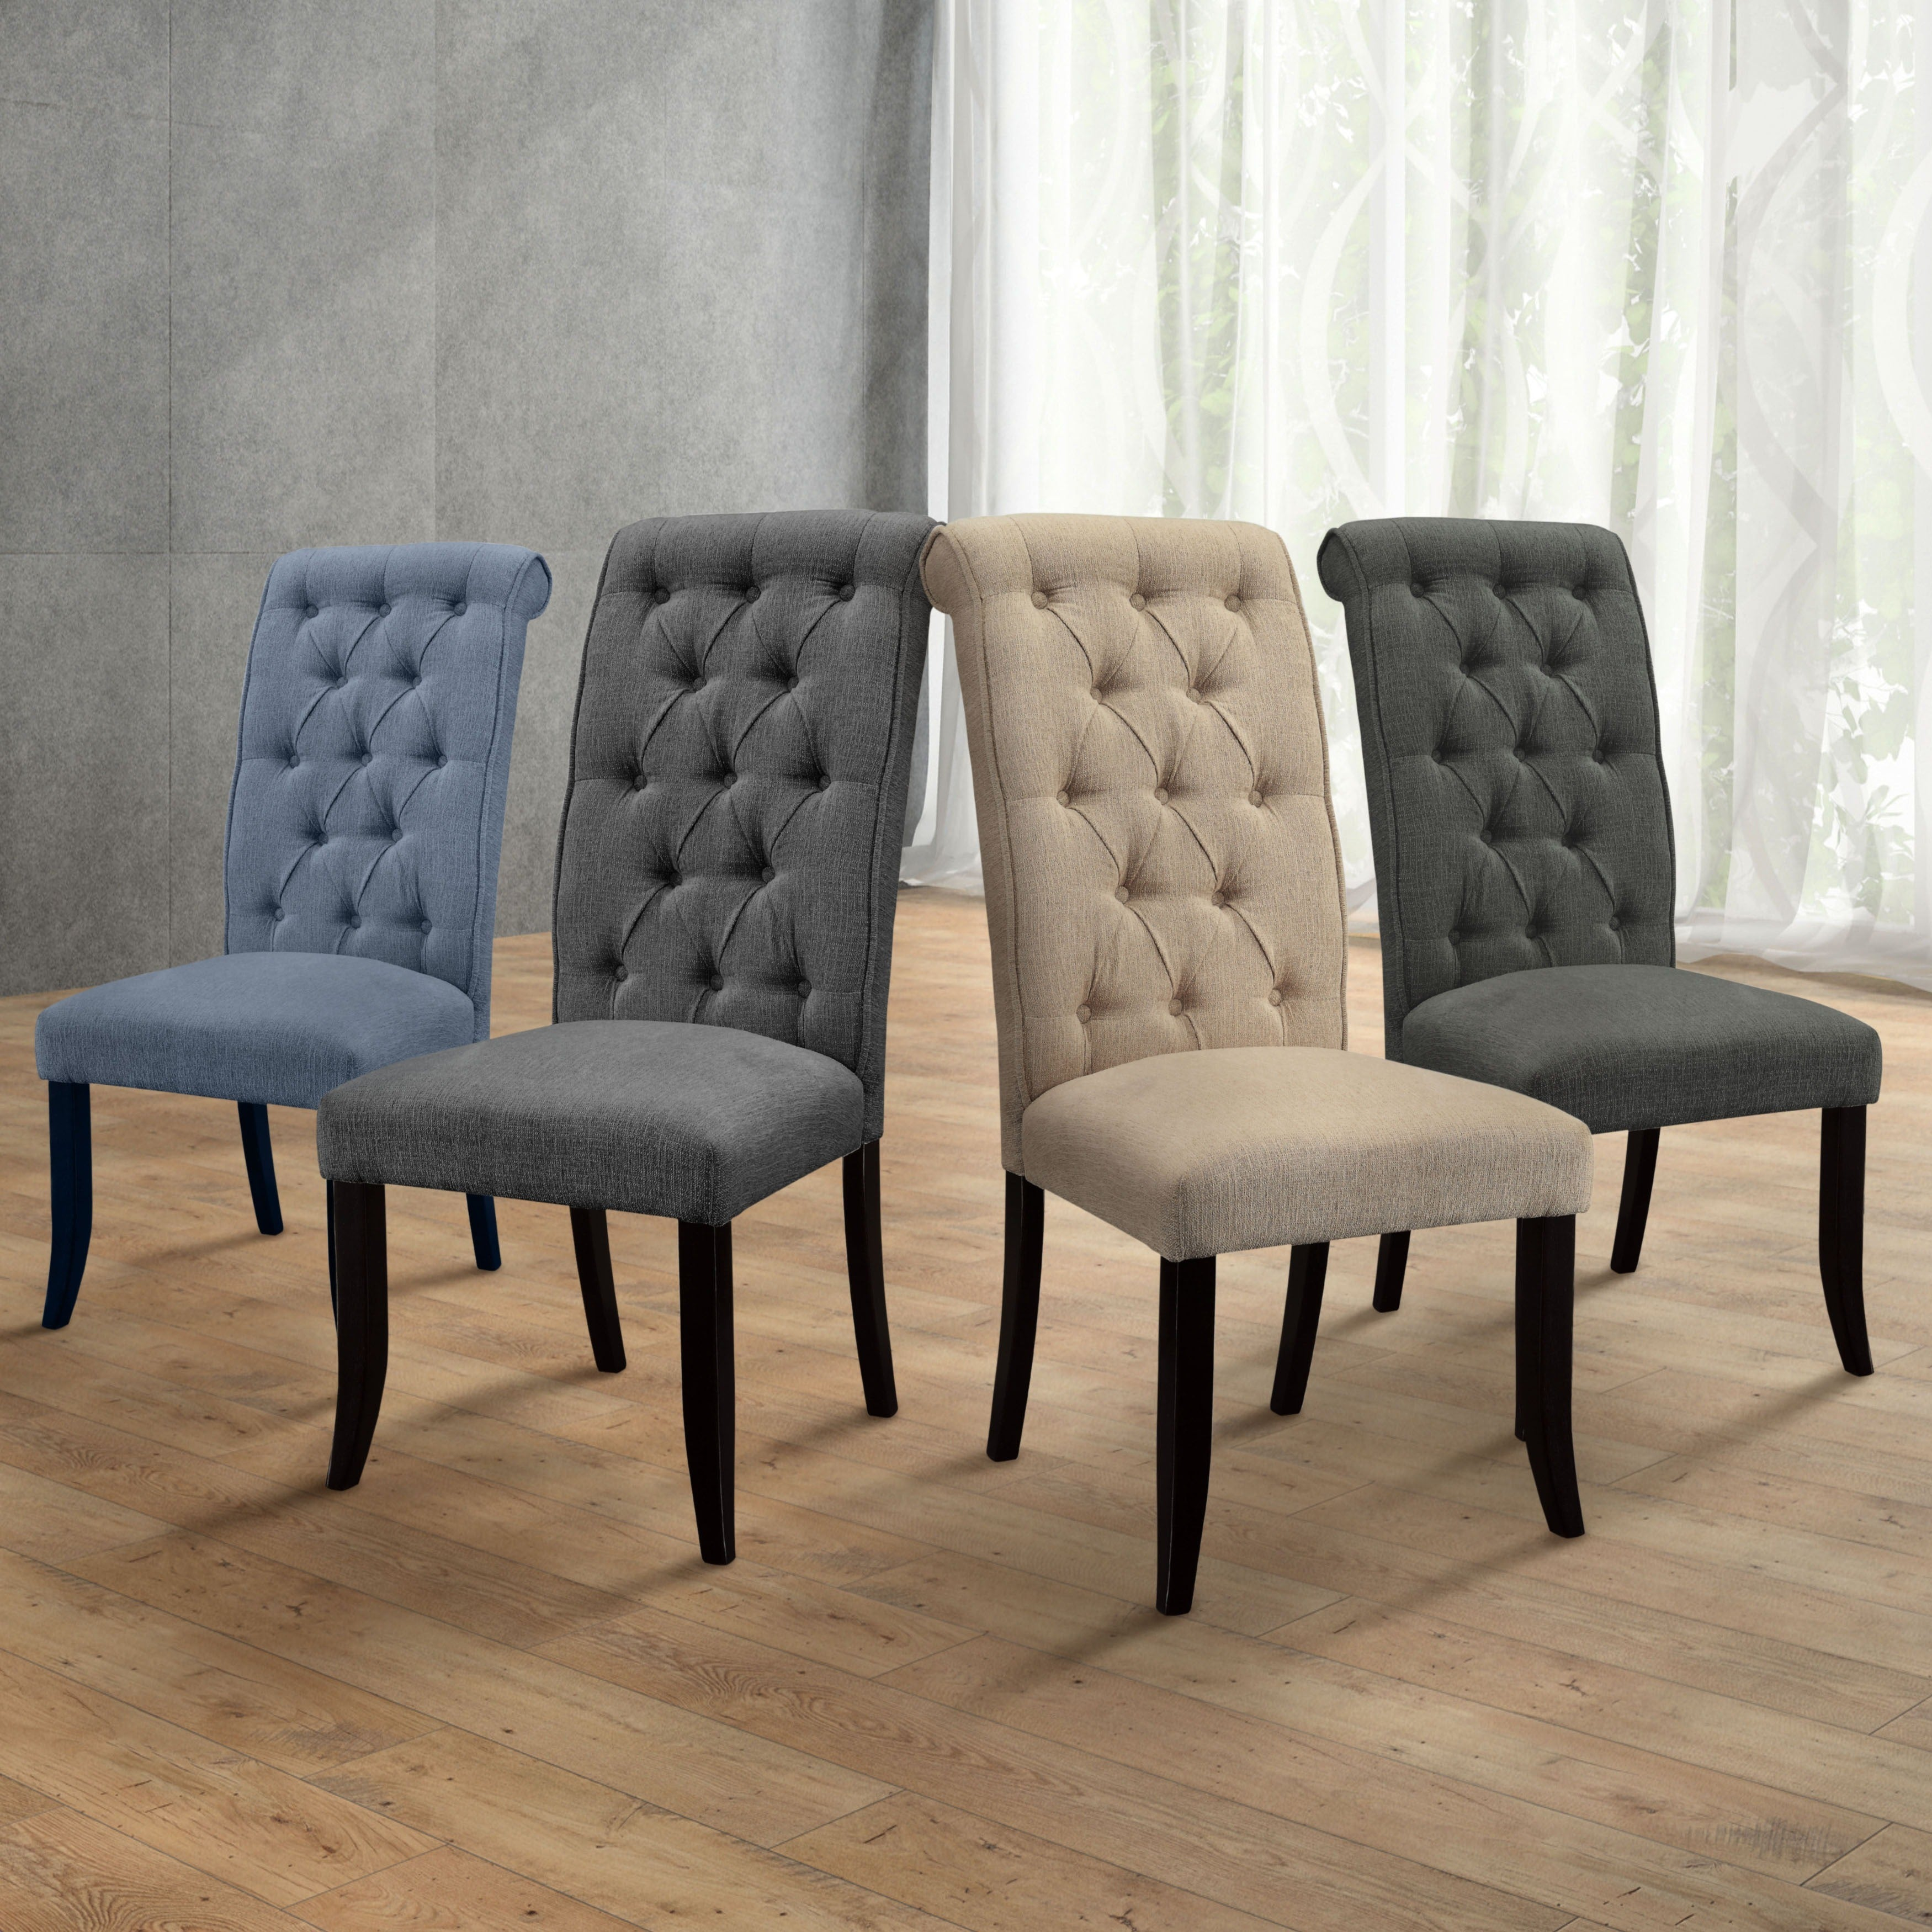 Delicieux Gracewood Hollow Nimmo Button Tufted Flax Dining Chairs (Set Of 2)